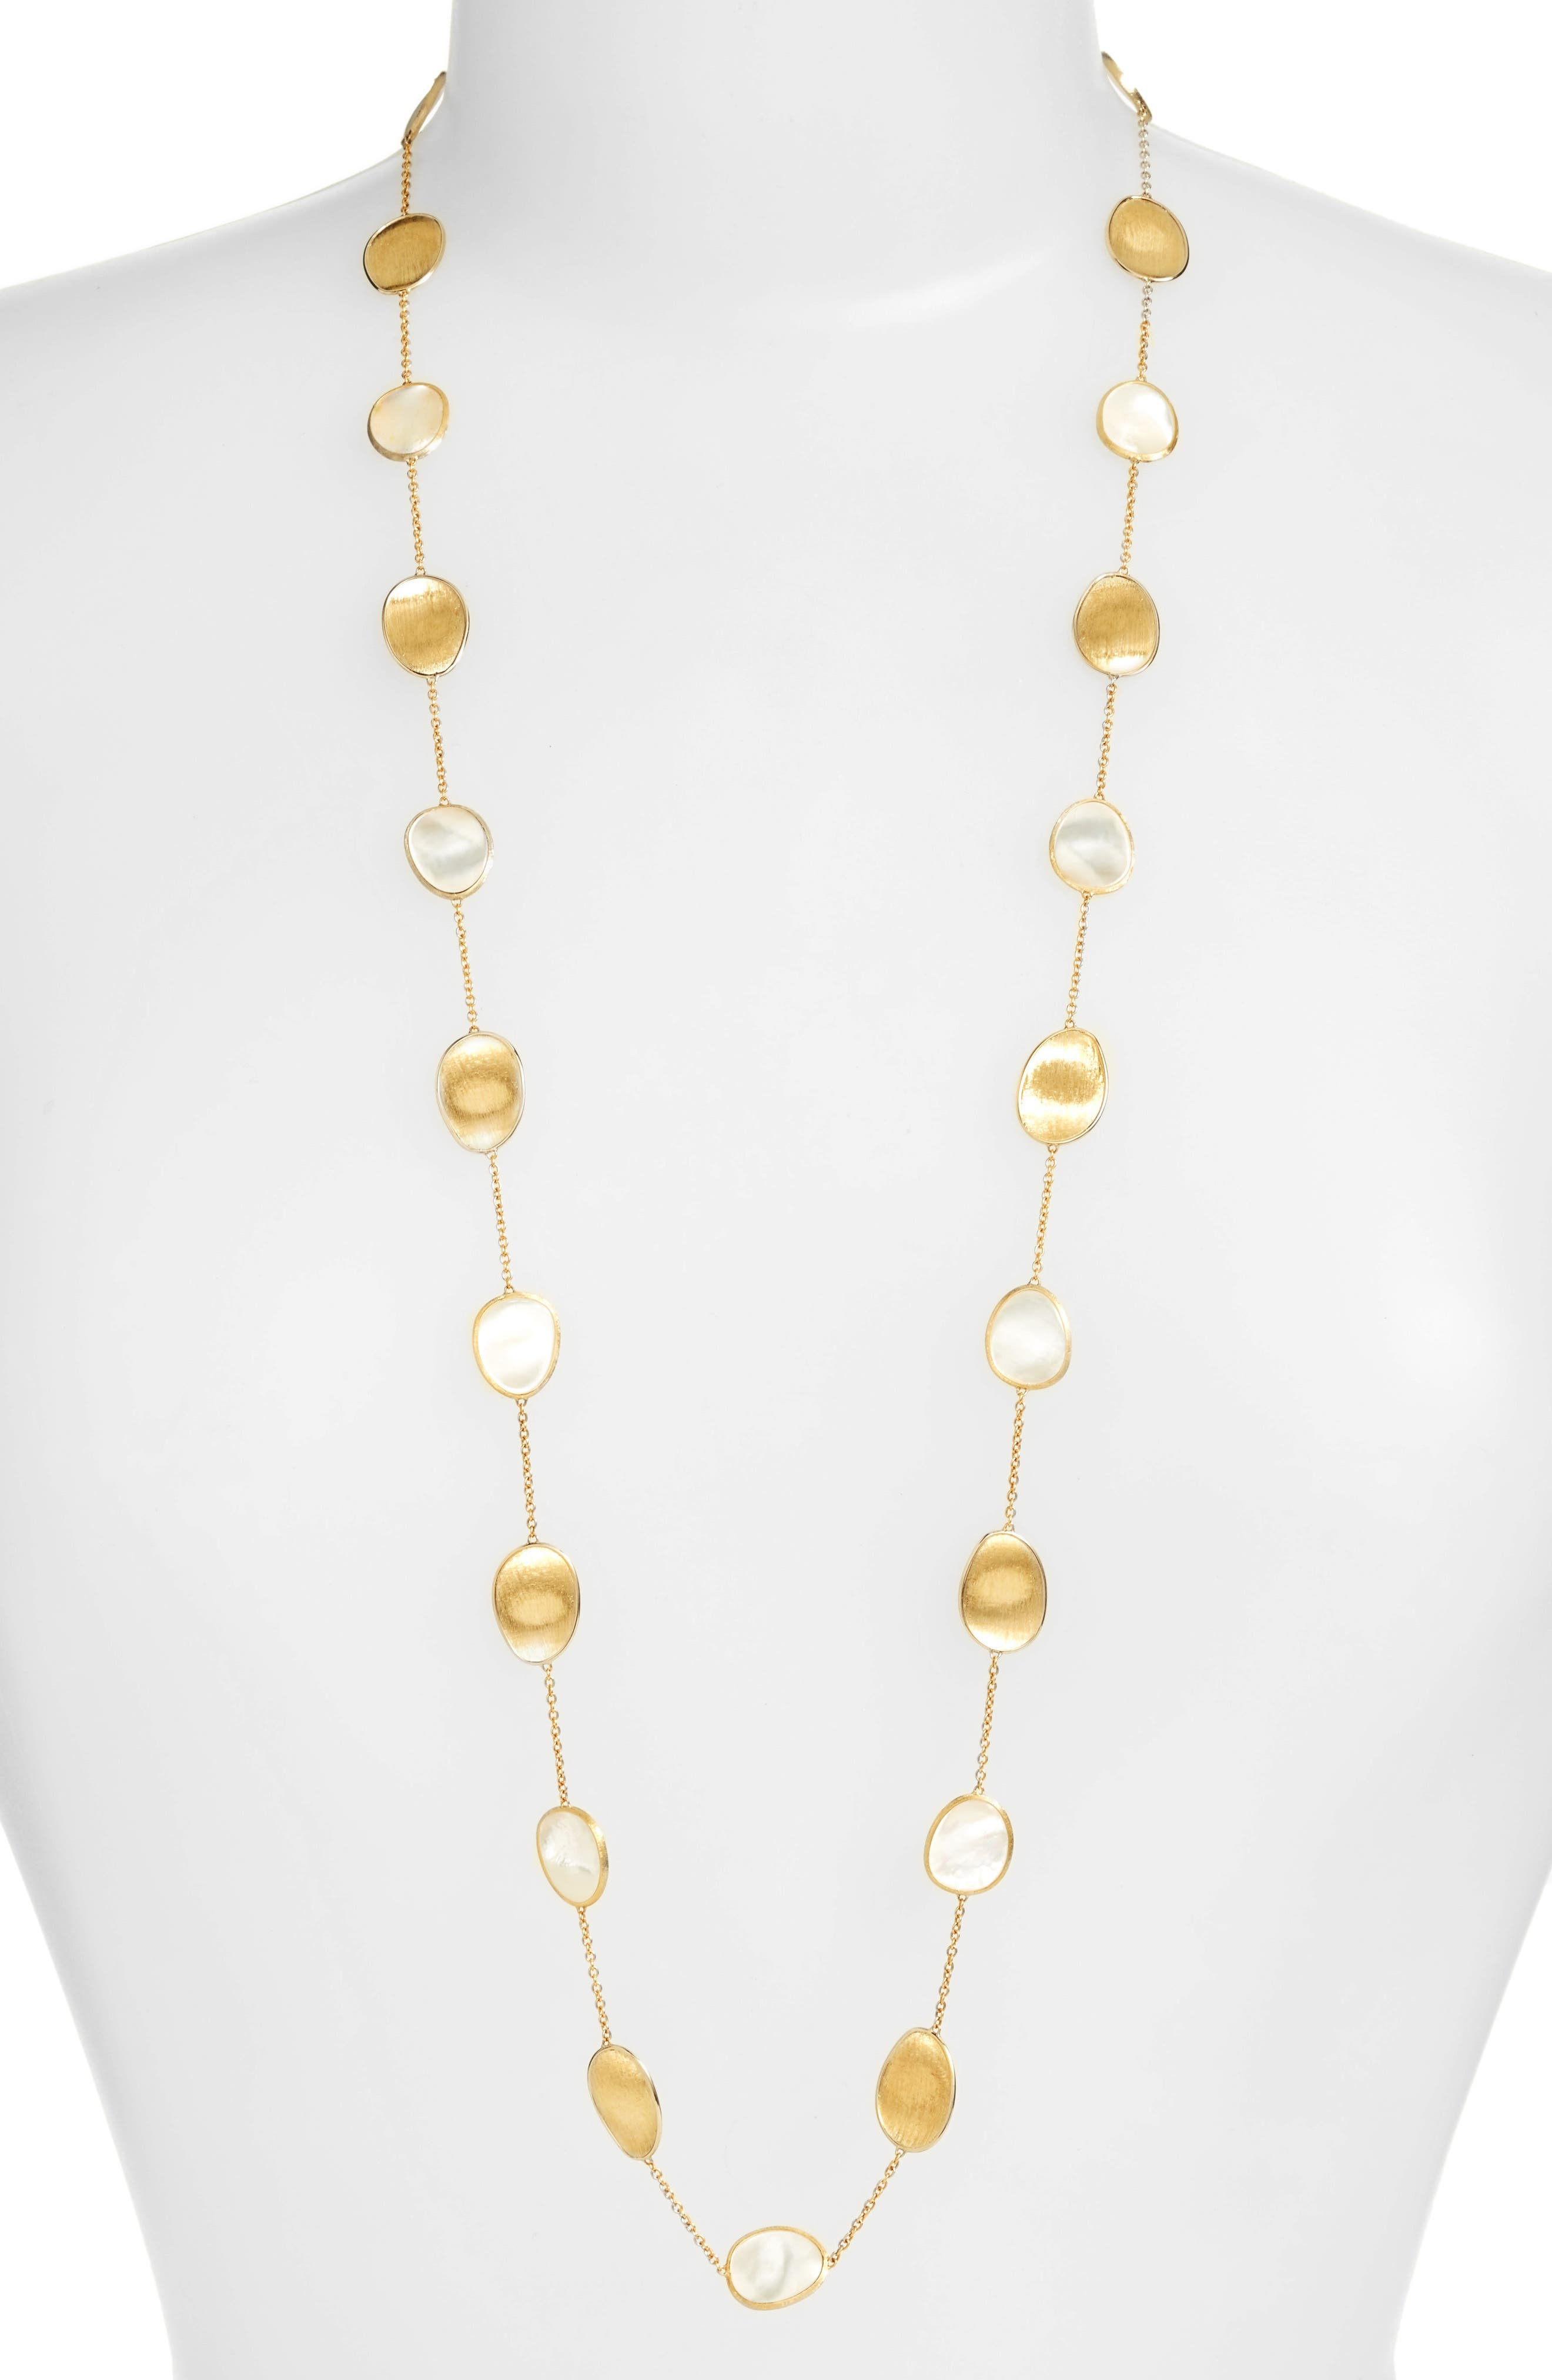 Lunaria Mother of Pearl Long Strand Necklace,                             Main thumbnail 1, color,                             WHITE MOTHER OF PEARL